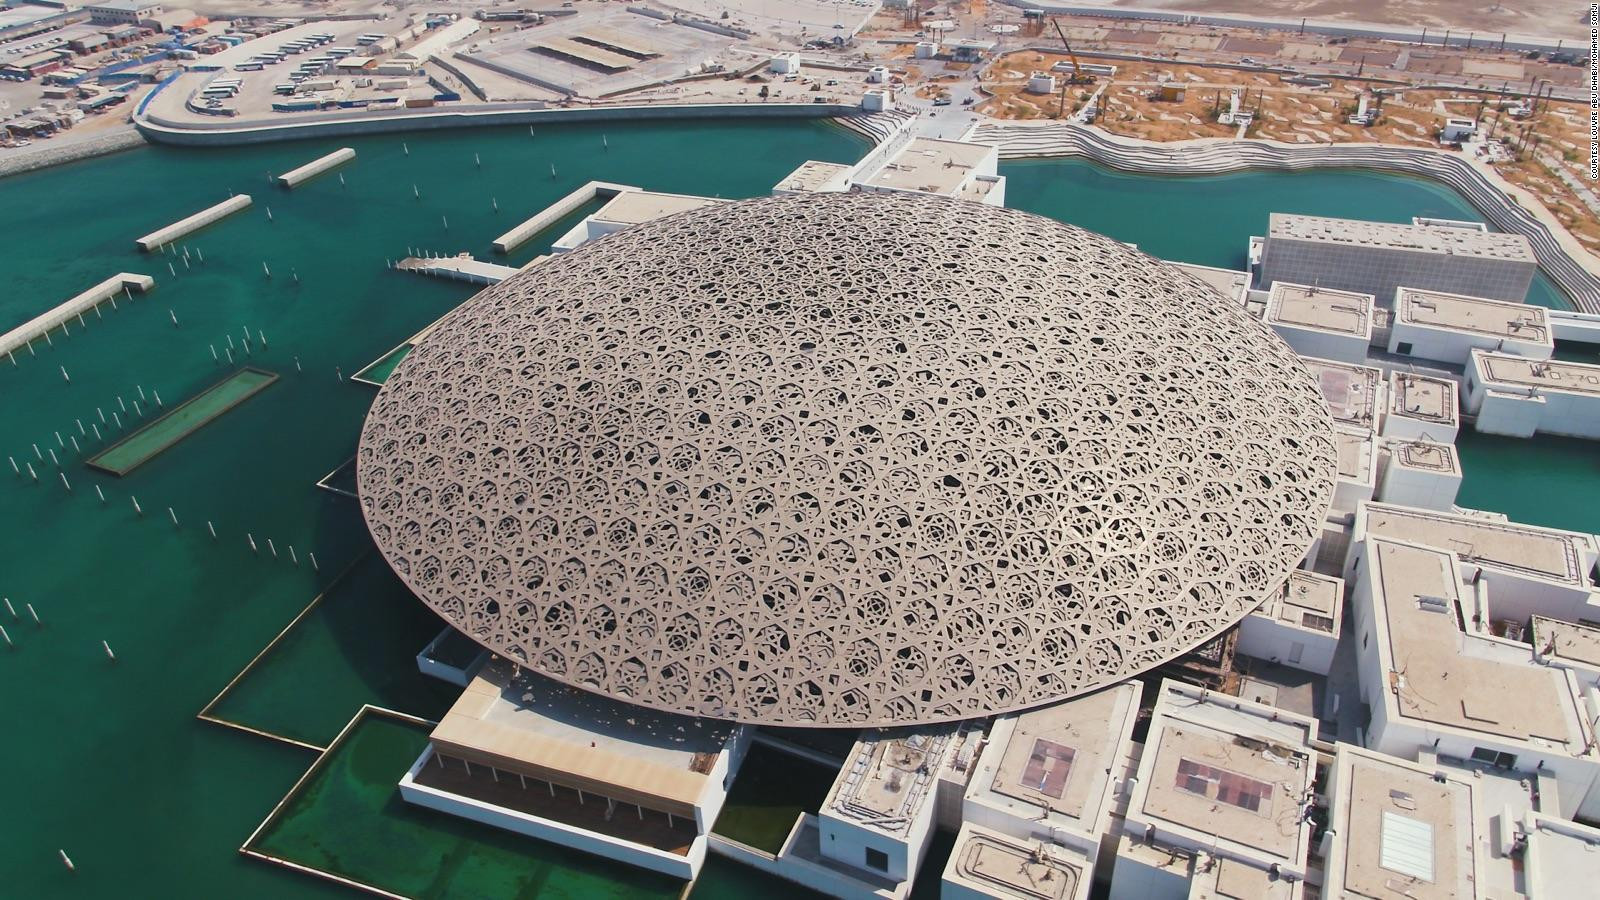 LOUVRE ABU DHABI Unique museum for international artwork